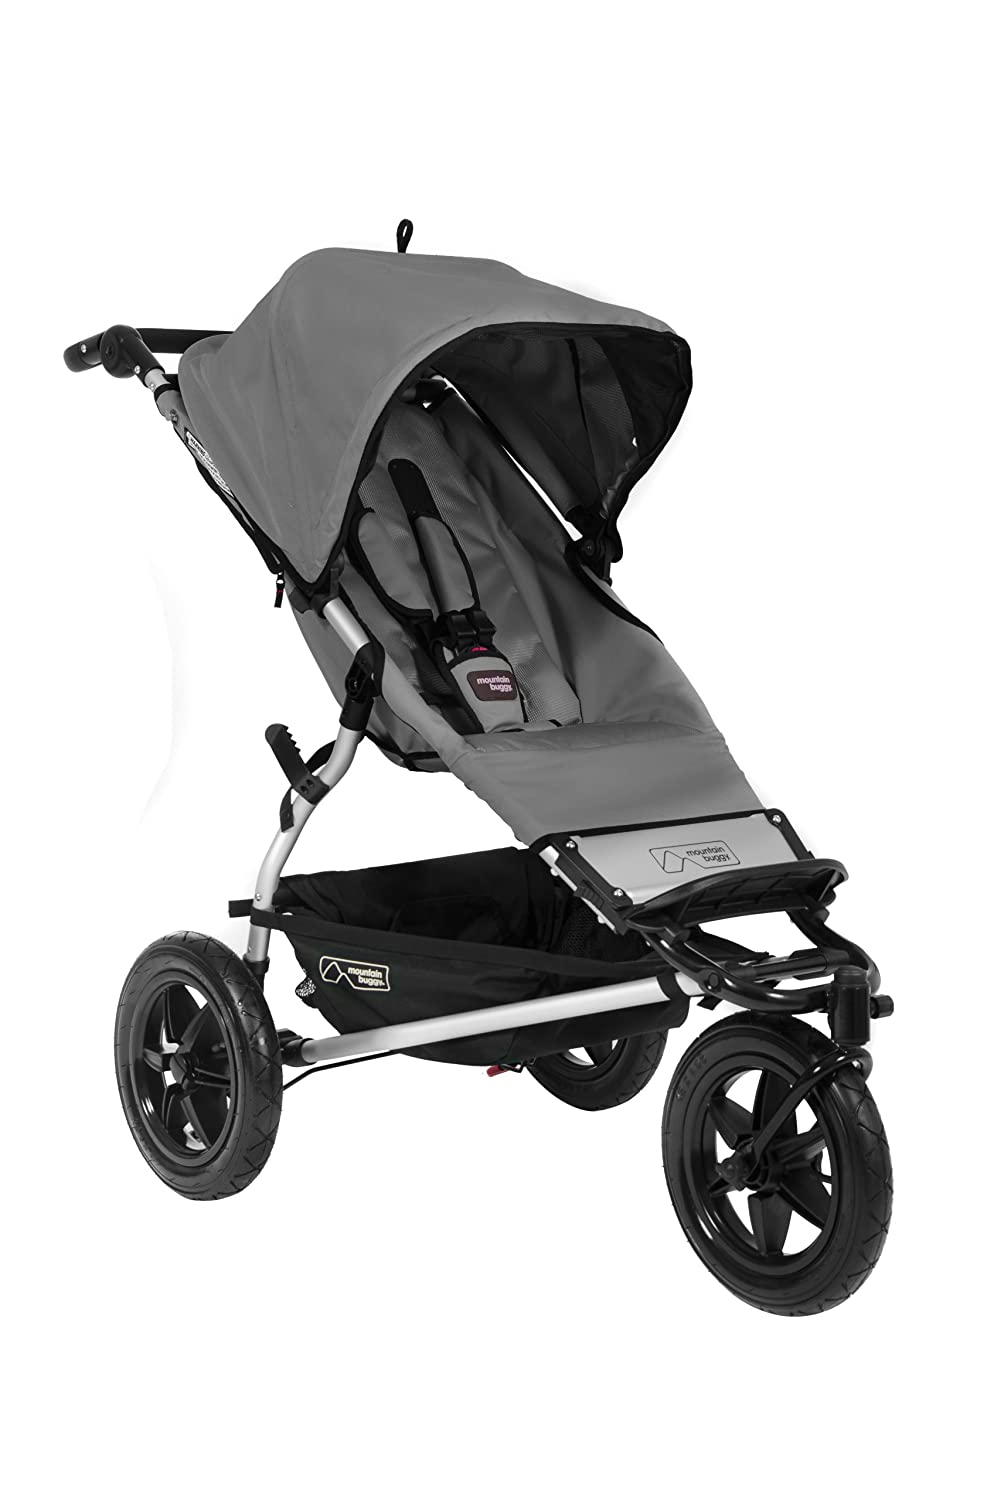 Mountain Buggy 2013 Urban Jungle Stroller Discontinued by Manufacturer